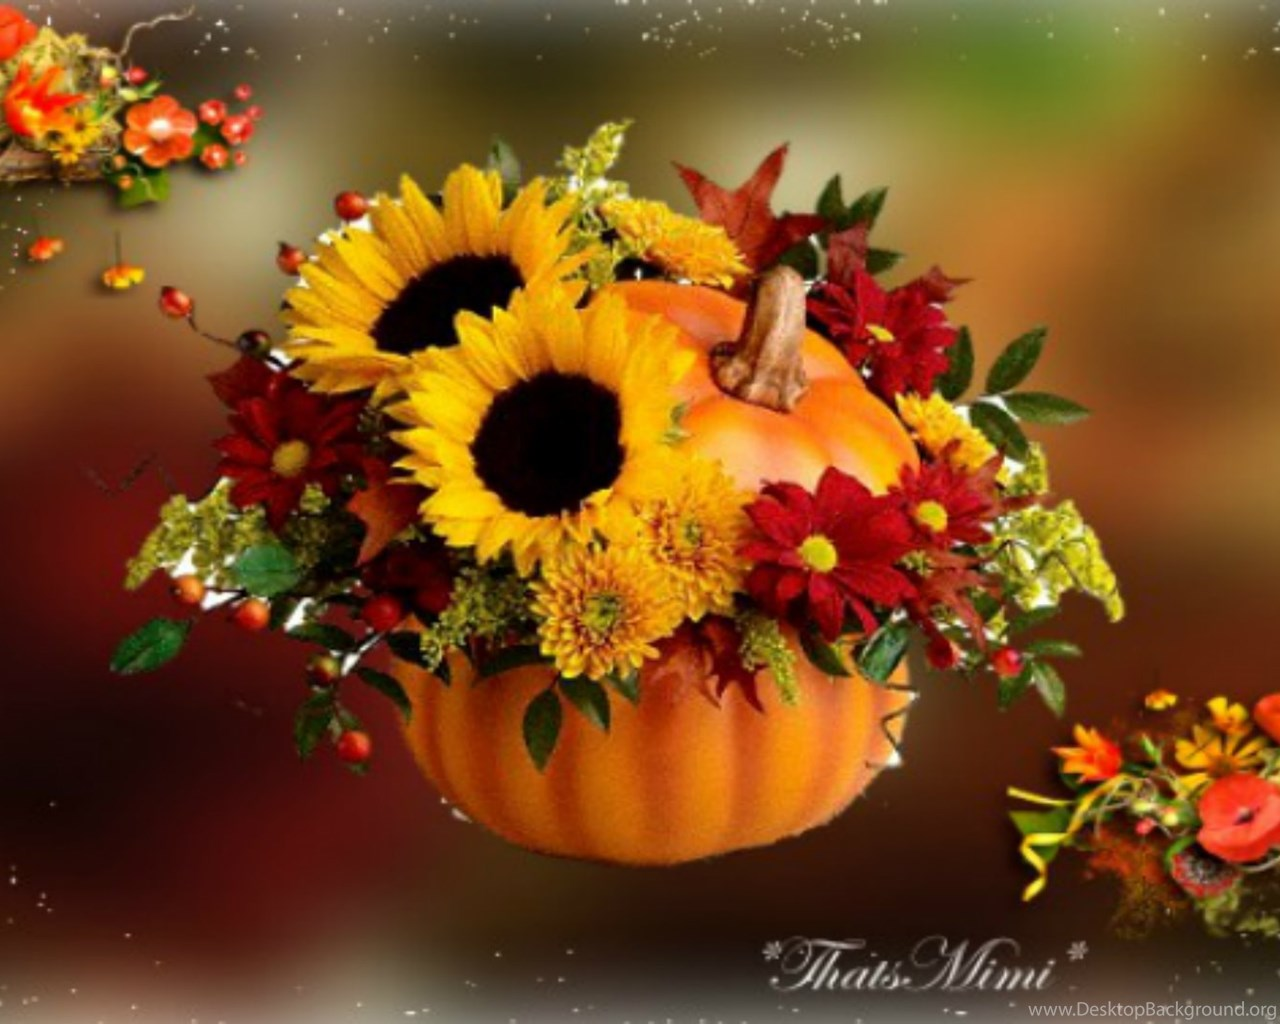 Hd Widescreen Fall Wallpaper Fall Flowers Wallpapers Celebrate Autumn Fall Pumpkin